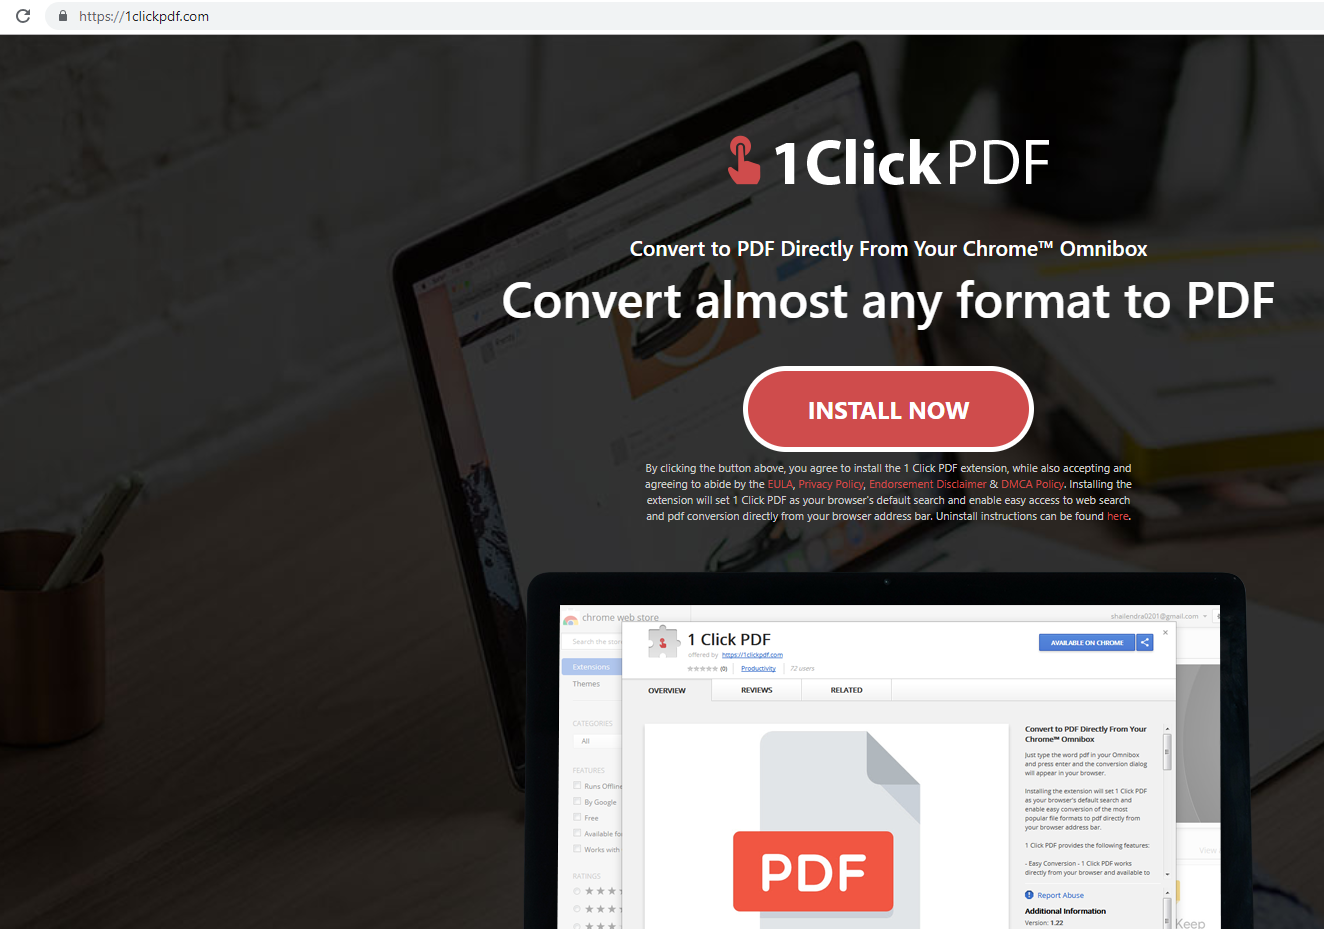 Remove 1ClickPDF from Mac